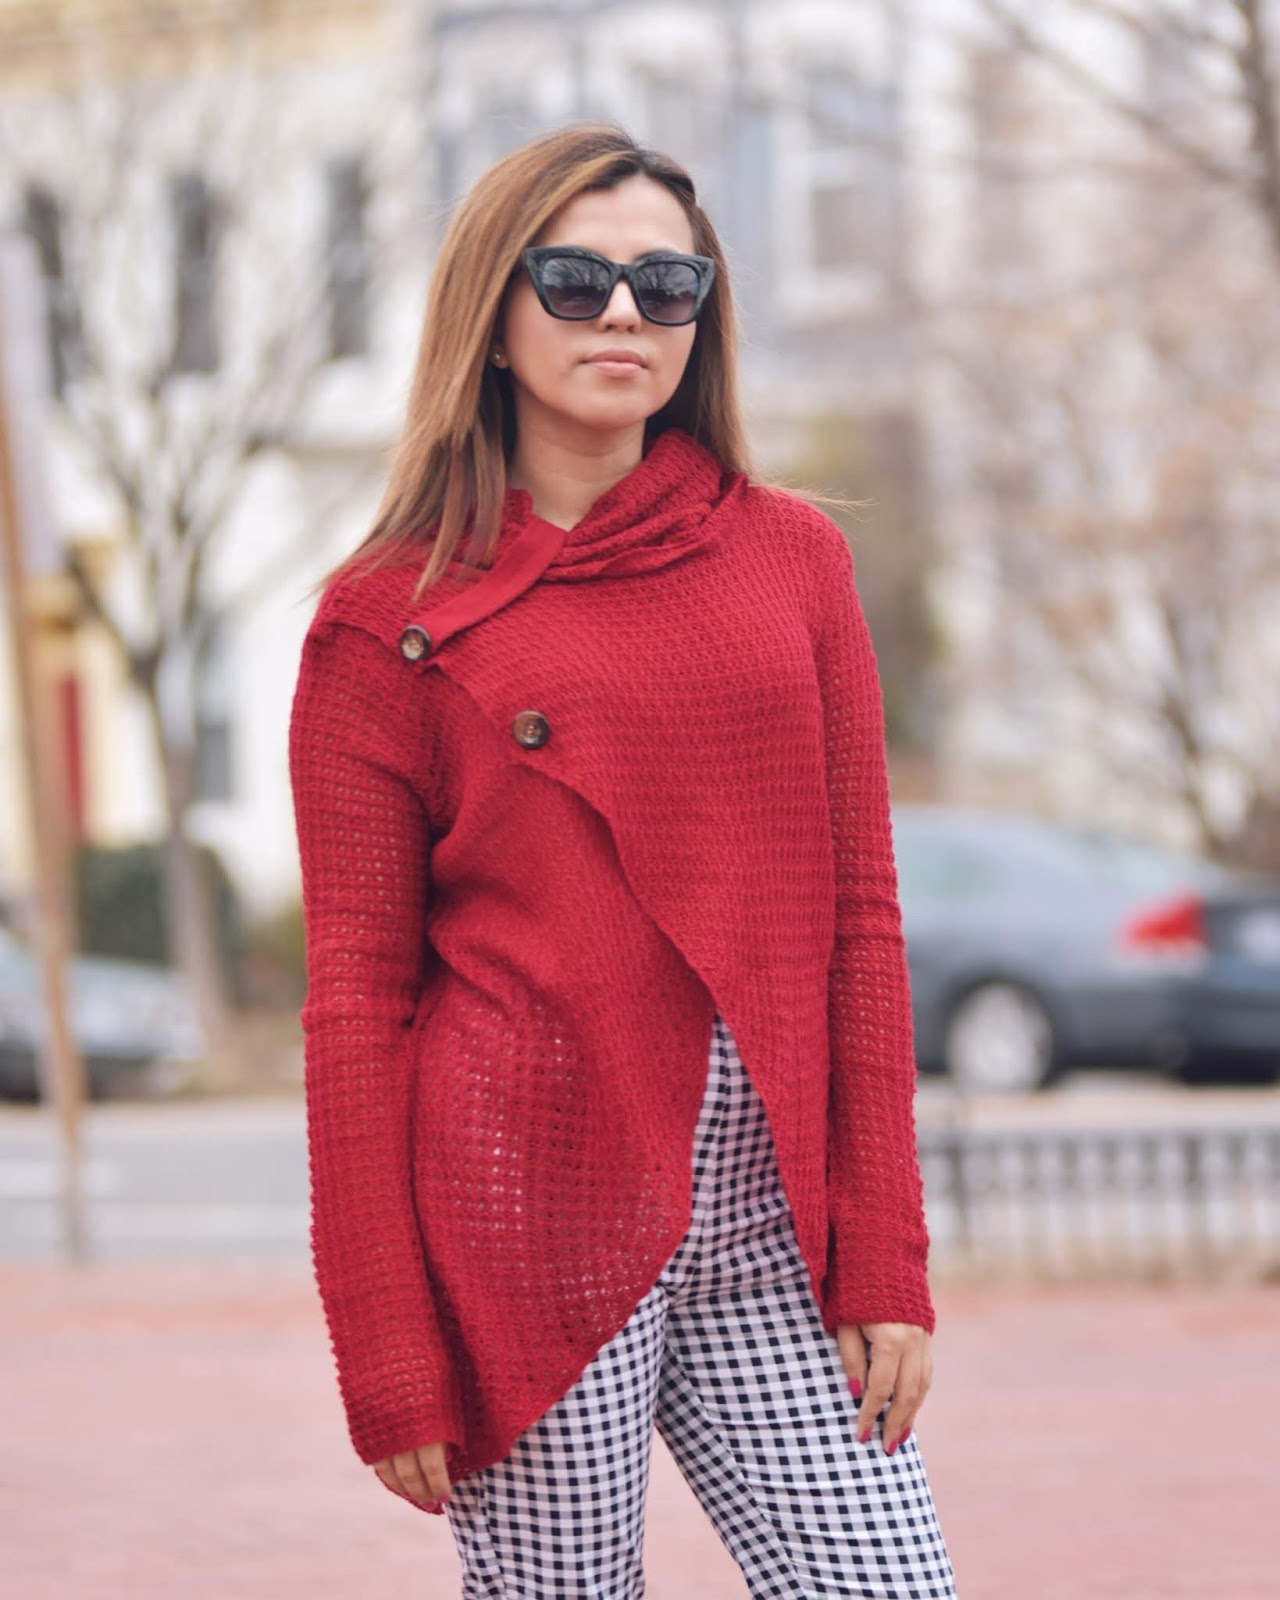 Goodbye Winter-MariEstilo-lookoftheday-fashionblogger-streetstyle-moda-